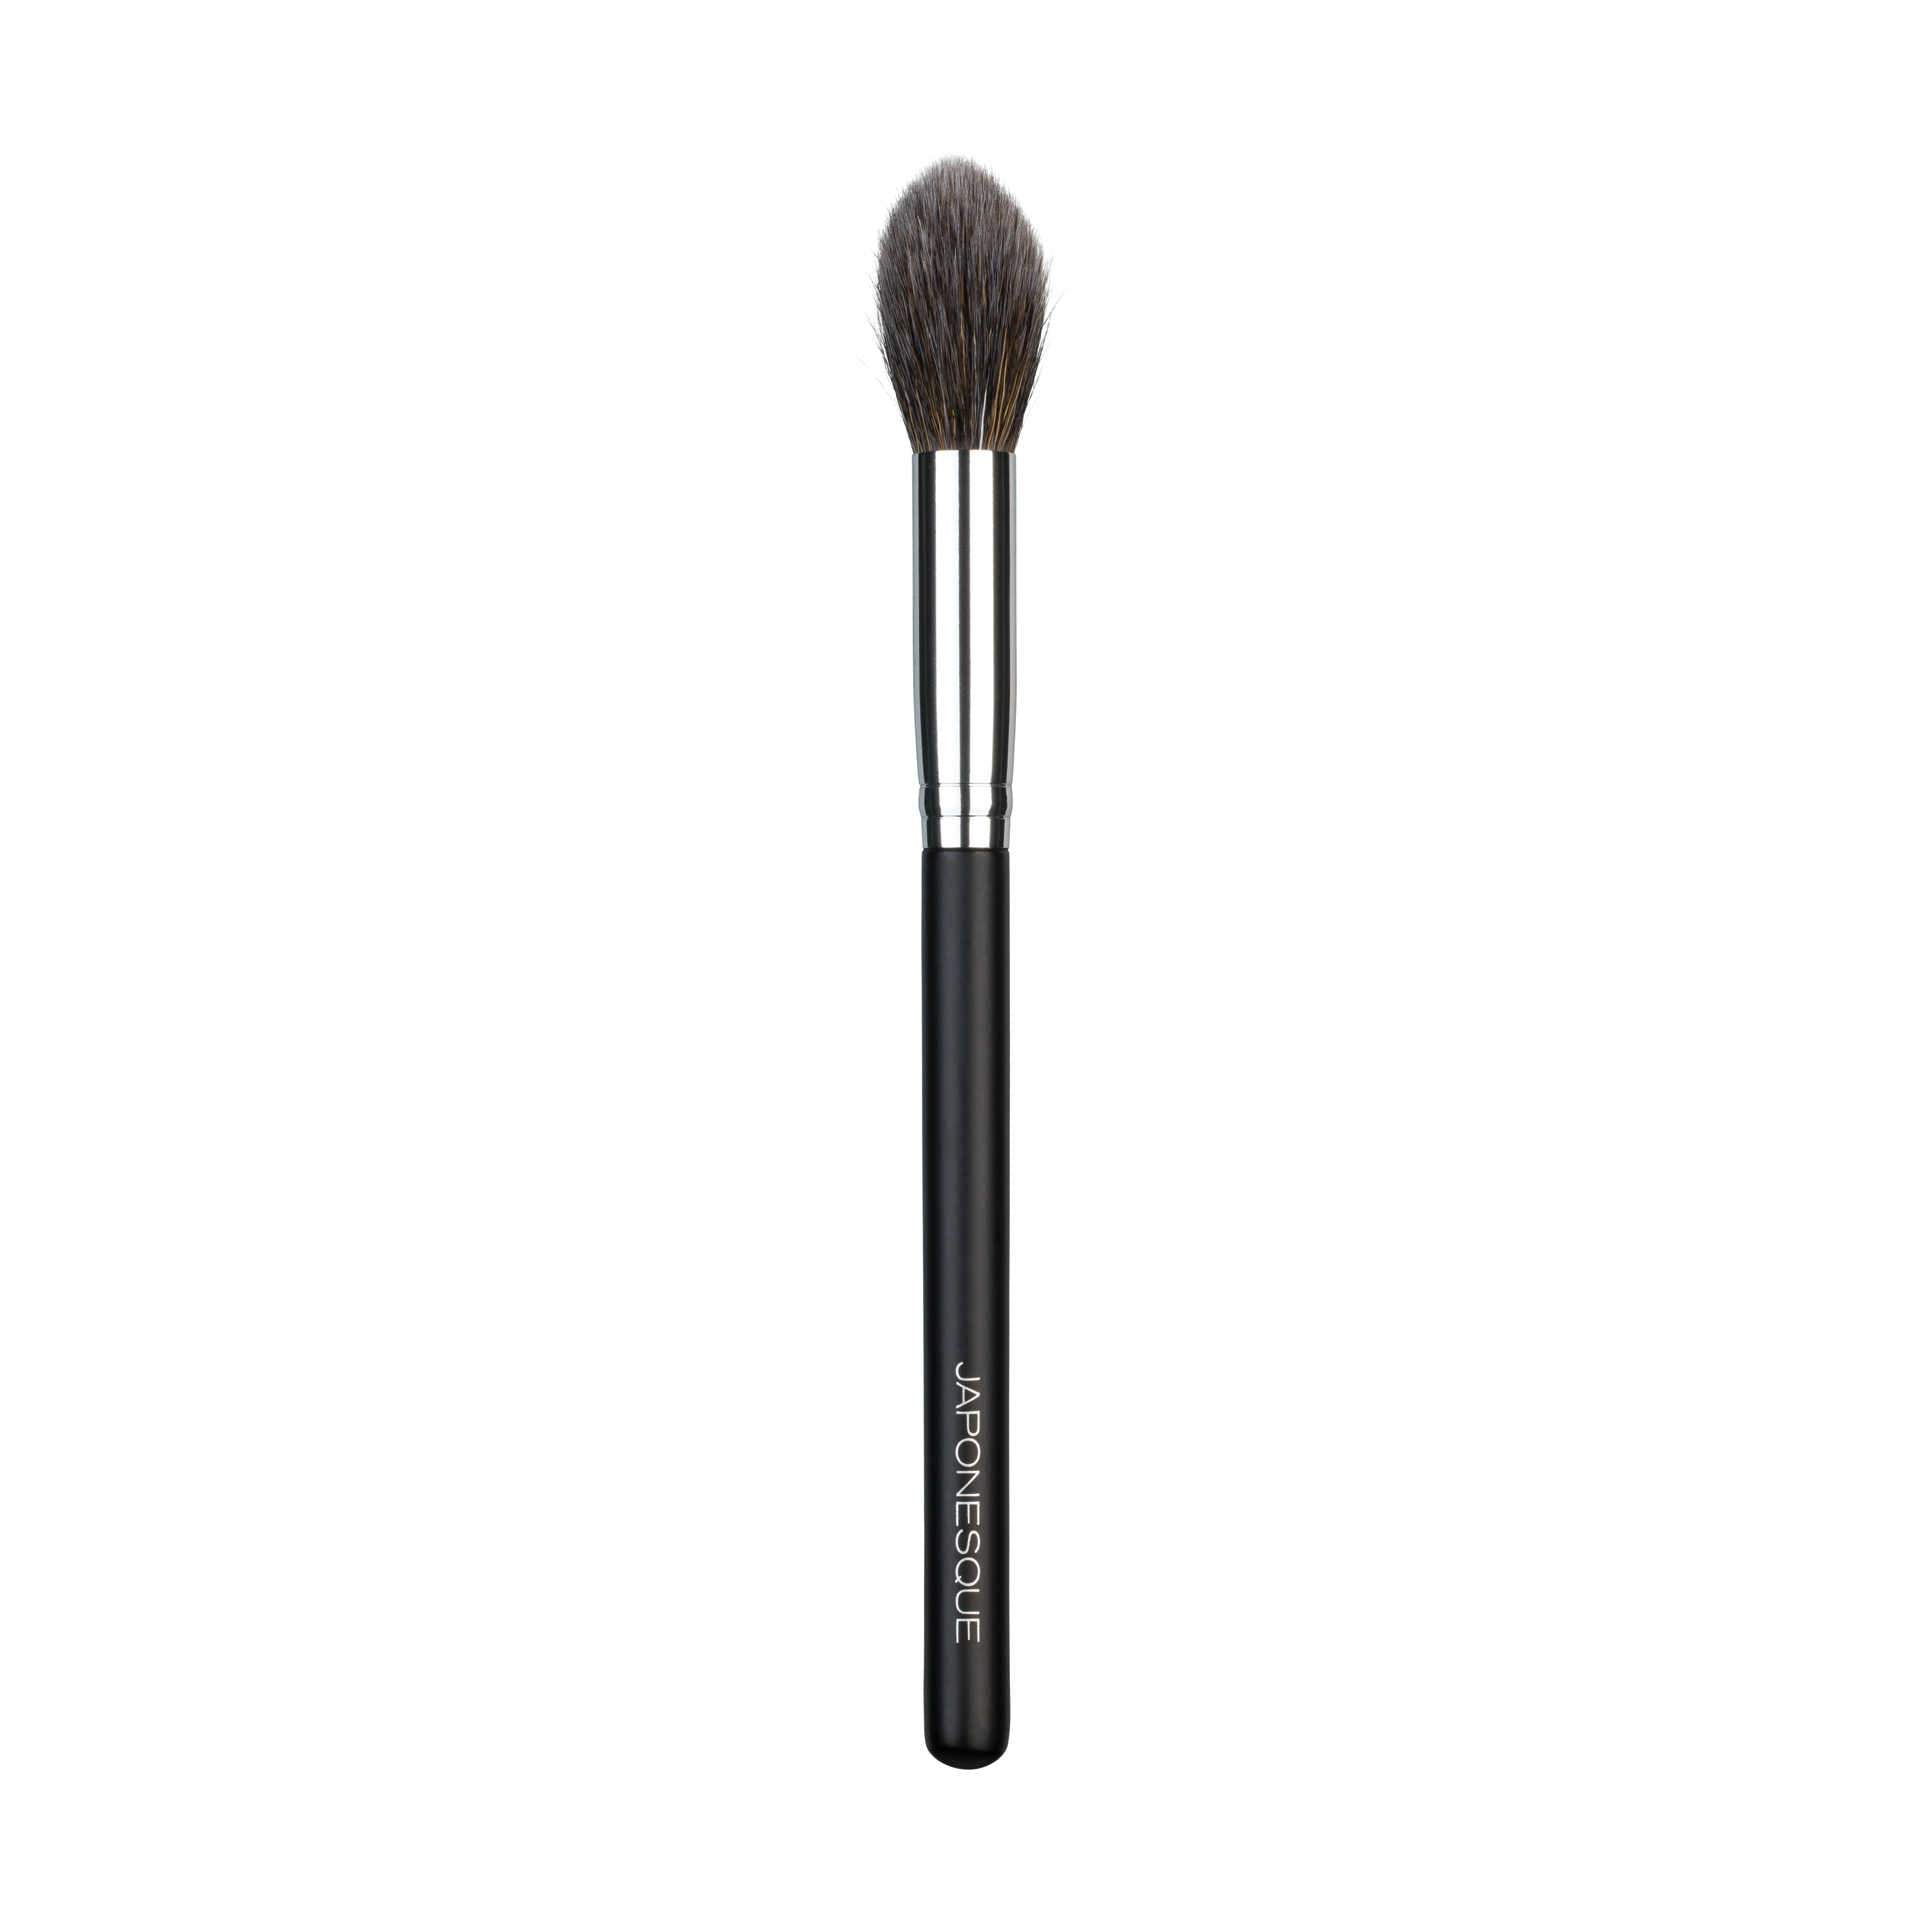 Tapered Powder Brush - Small